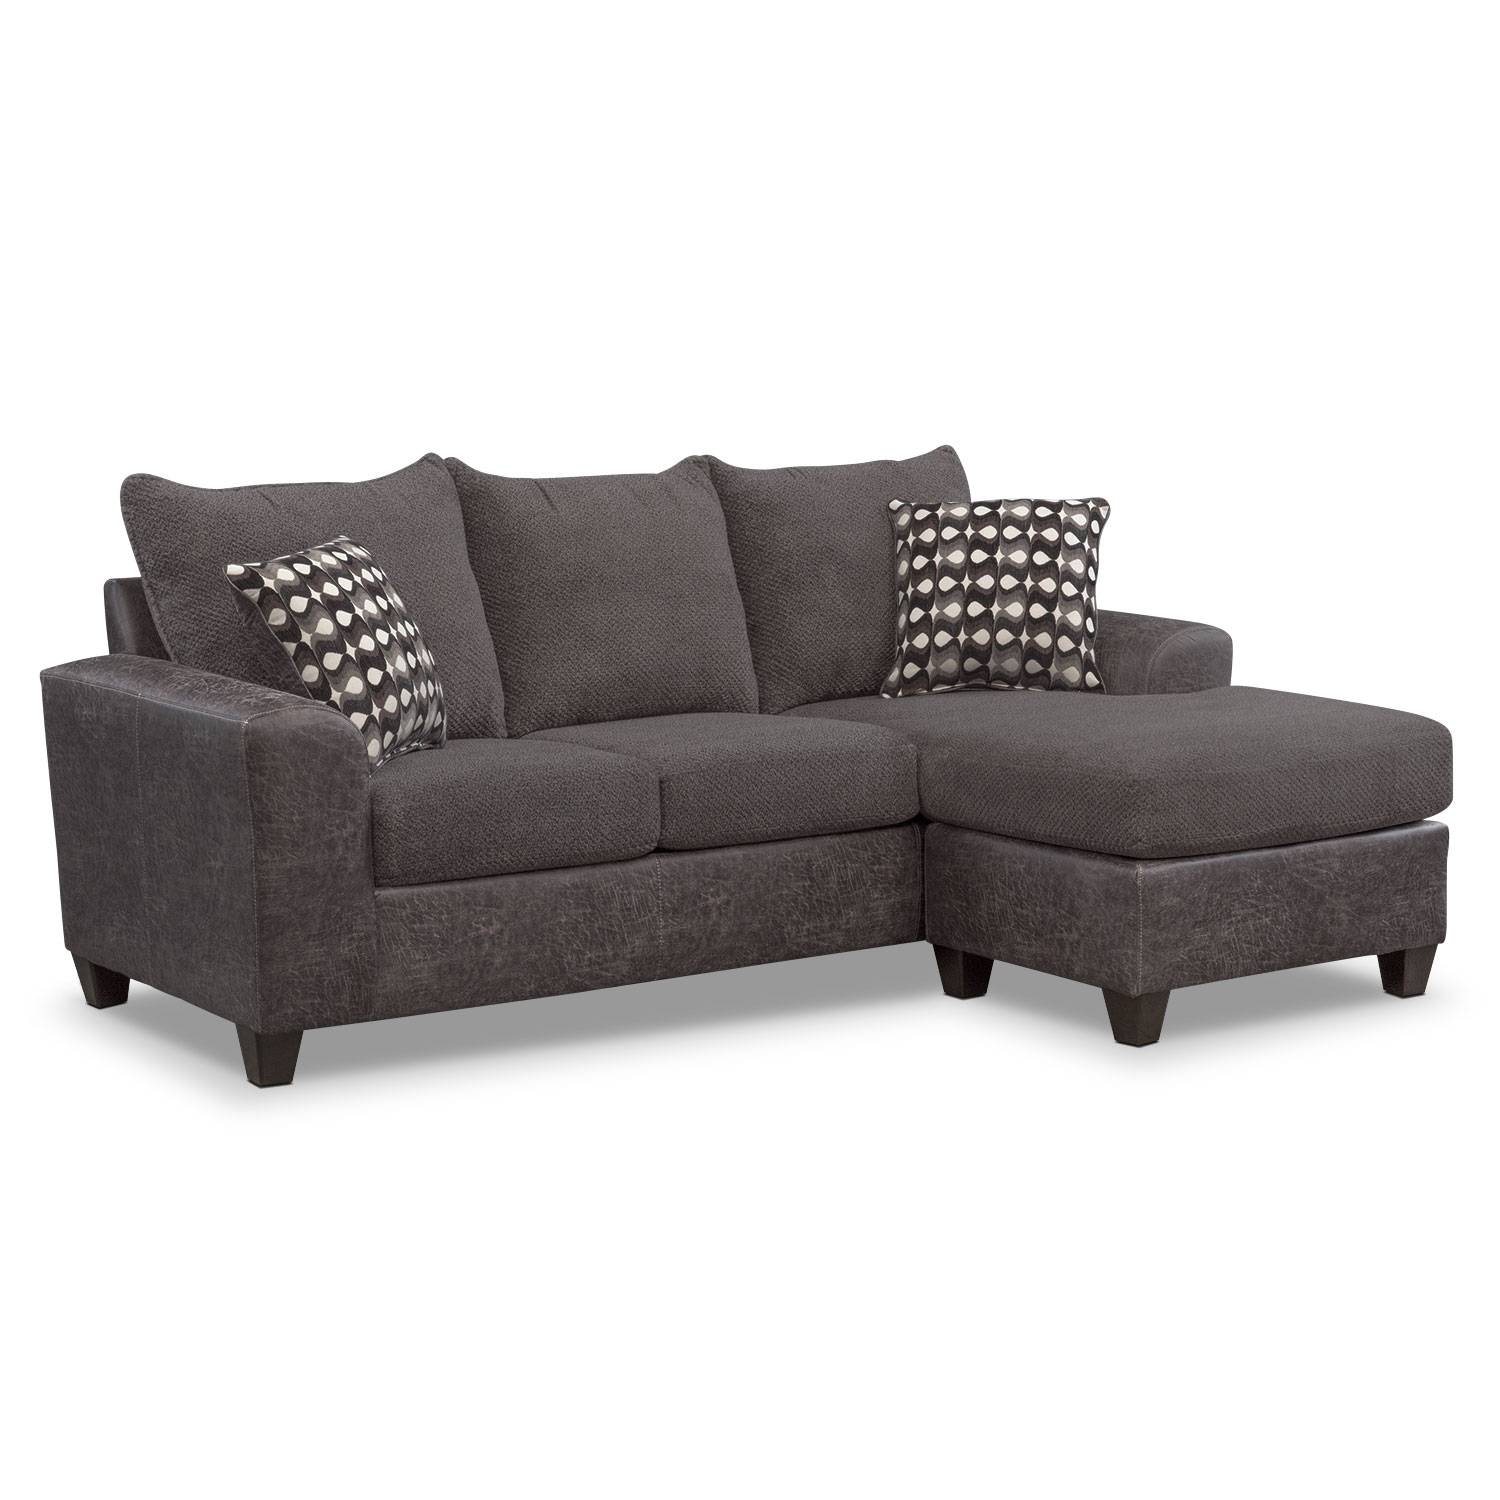 Sofas & Couches | Living Room Seating | Value City Furniture within Long Chaise Sofa (Image 17 of 25)